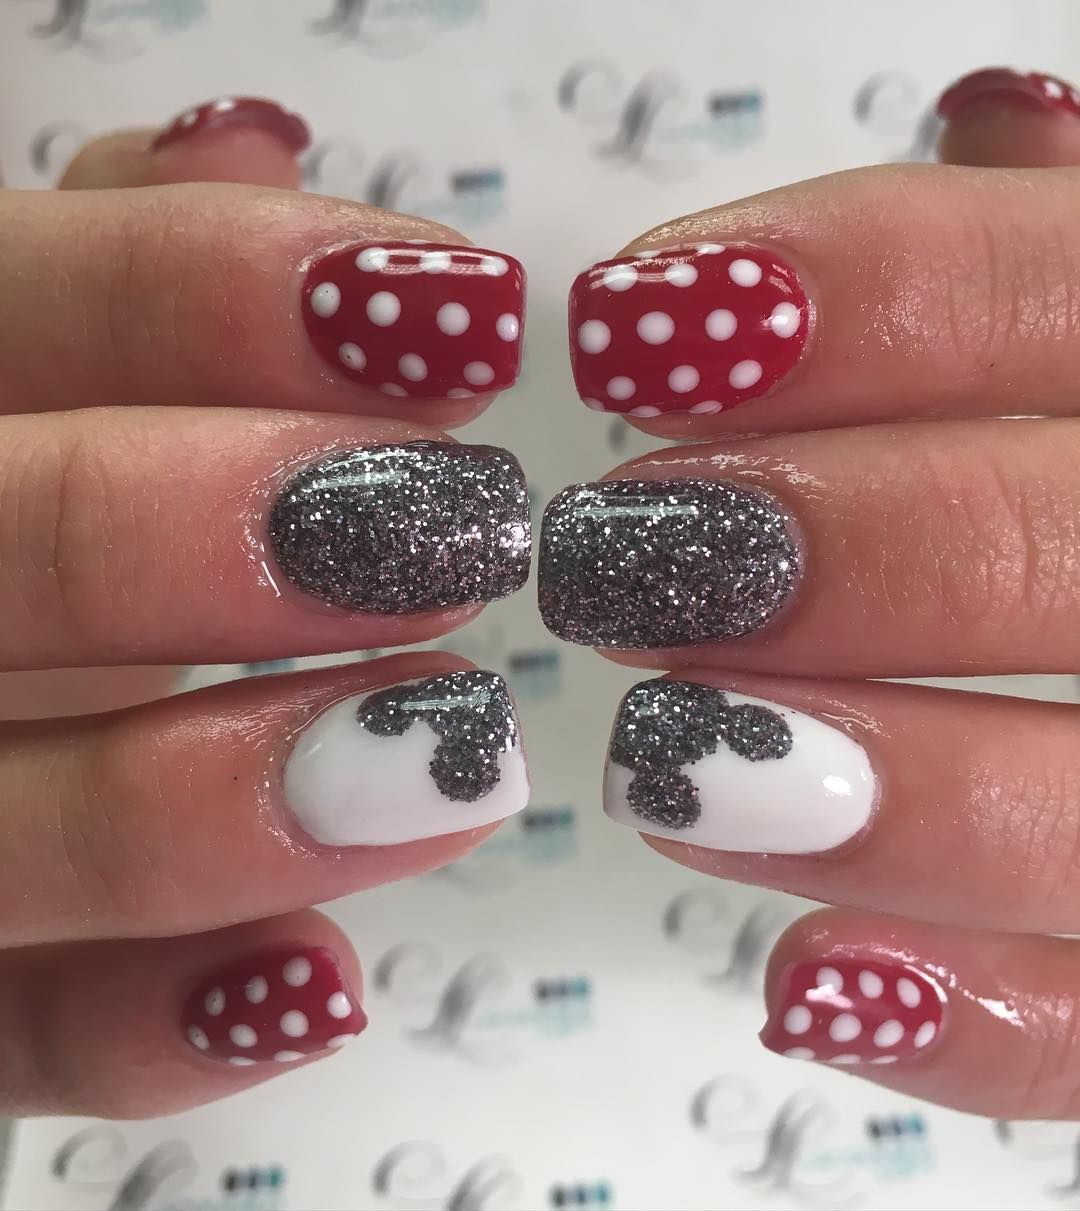 Pin by Samantha Torres on Let my fingers do the talking   Pinterest ...